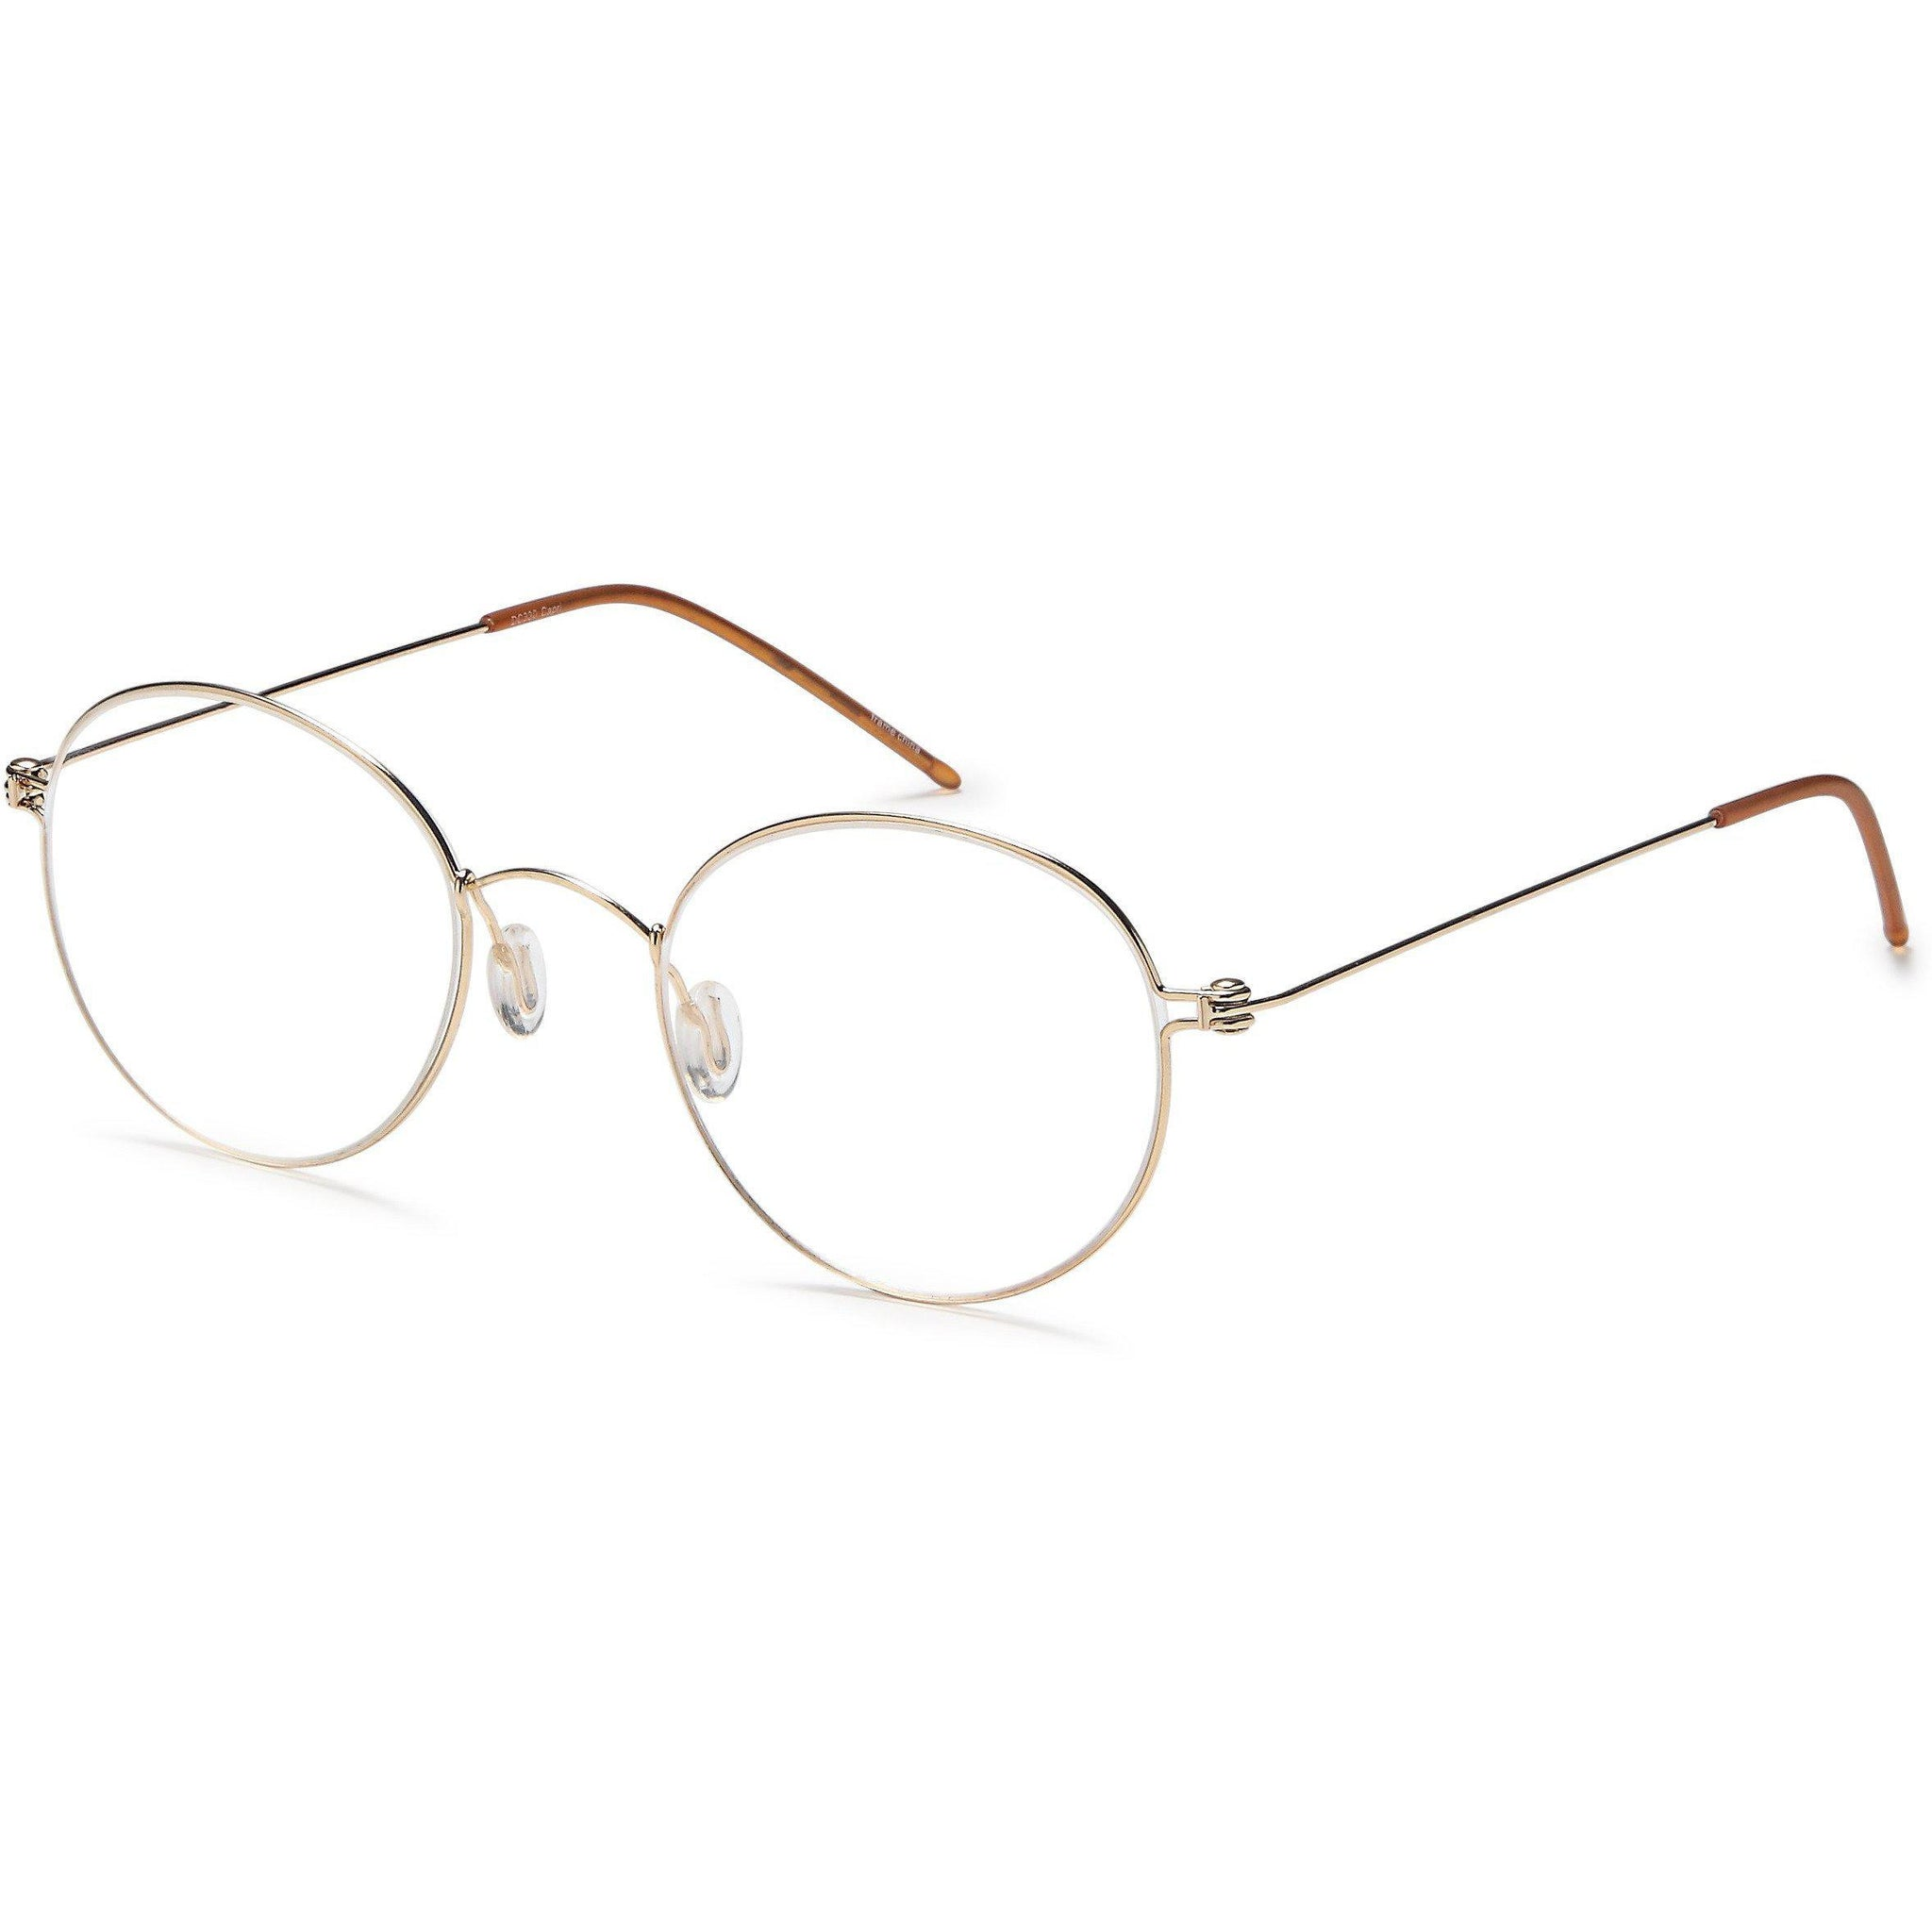 Di Caprio Prescription Glasses DC 330 Eyeglasses Frame - timetoshade